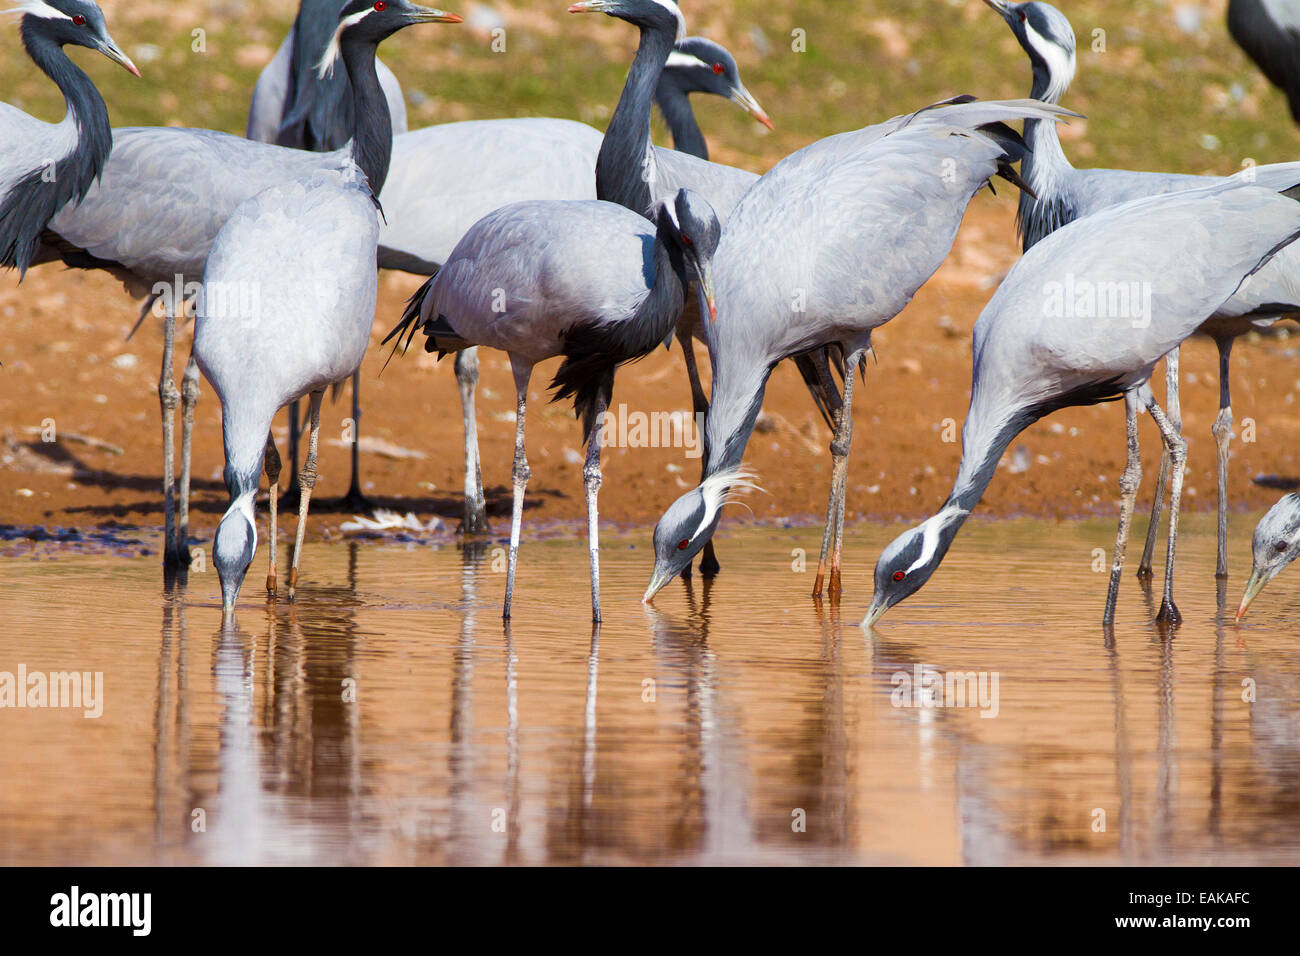 Indian Crane Bird Stock Photos & Indian Crane Bird Stock